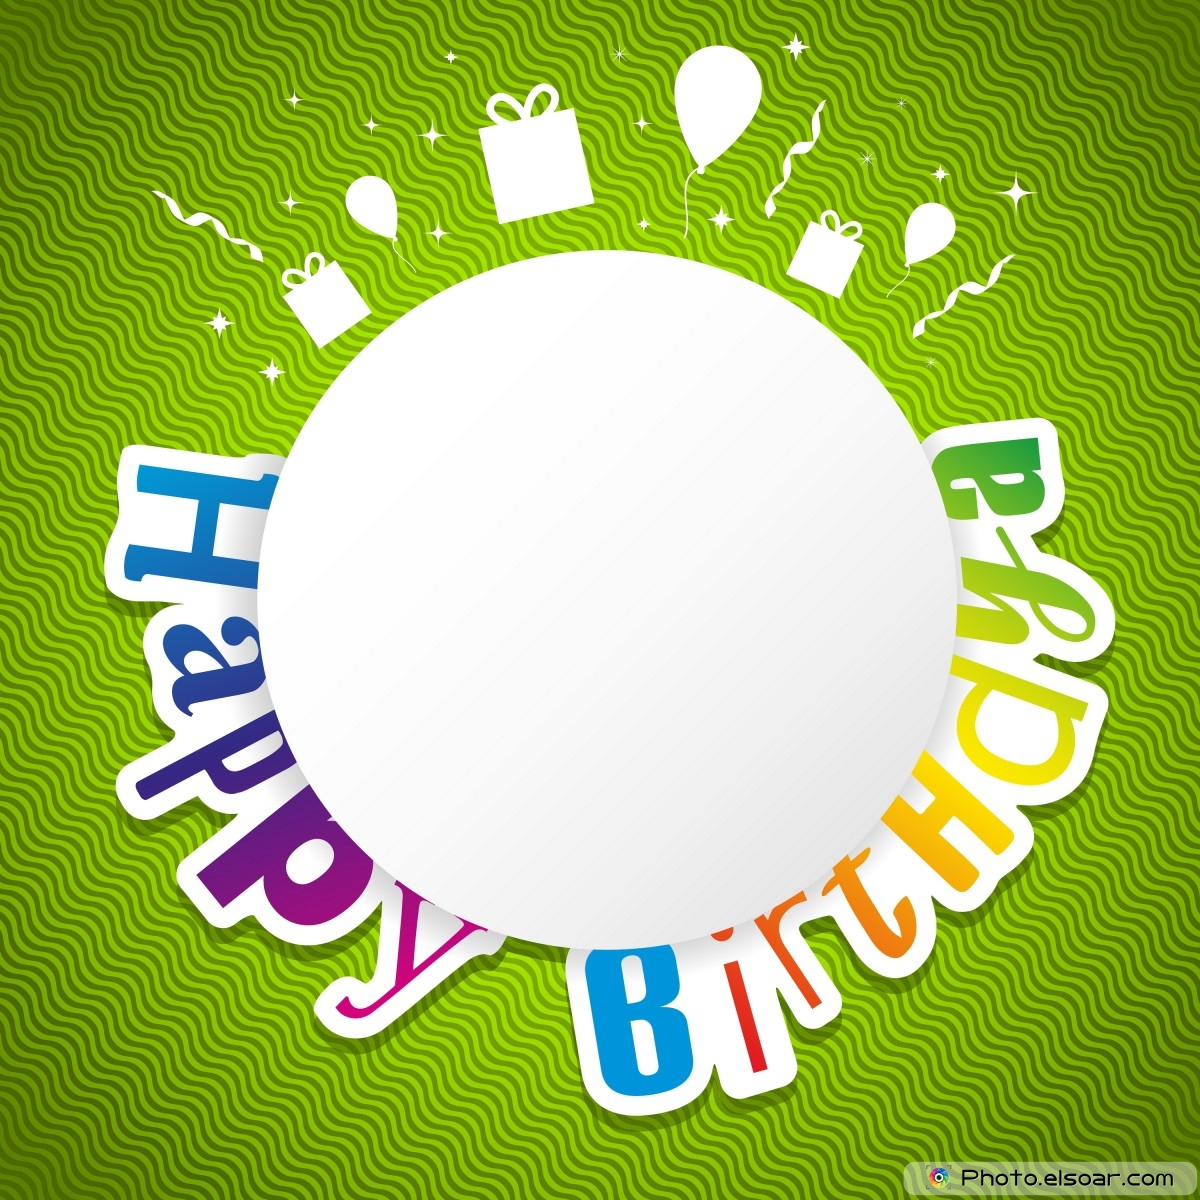 Top 10 Happy Birthday GCards Free Download Elsoar – Green Birthday Card